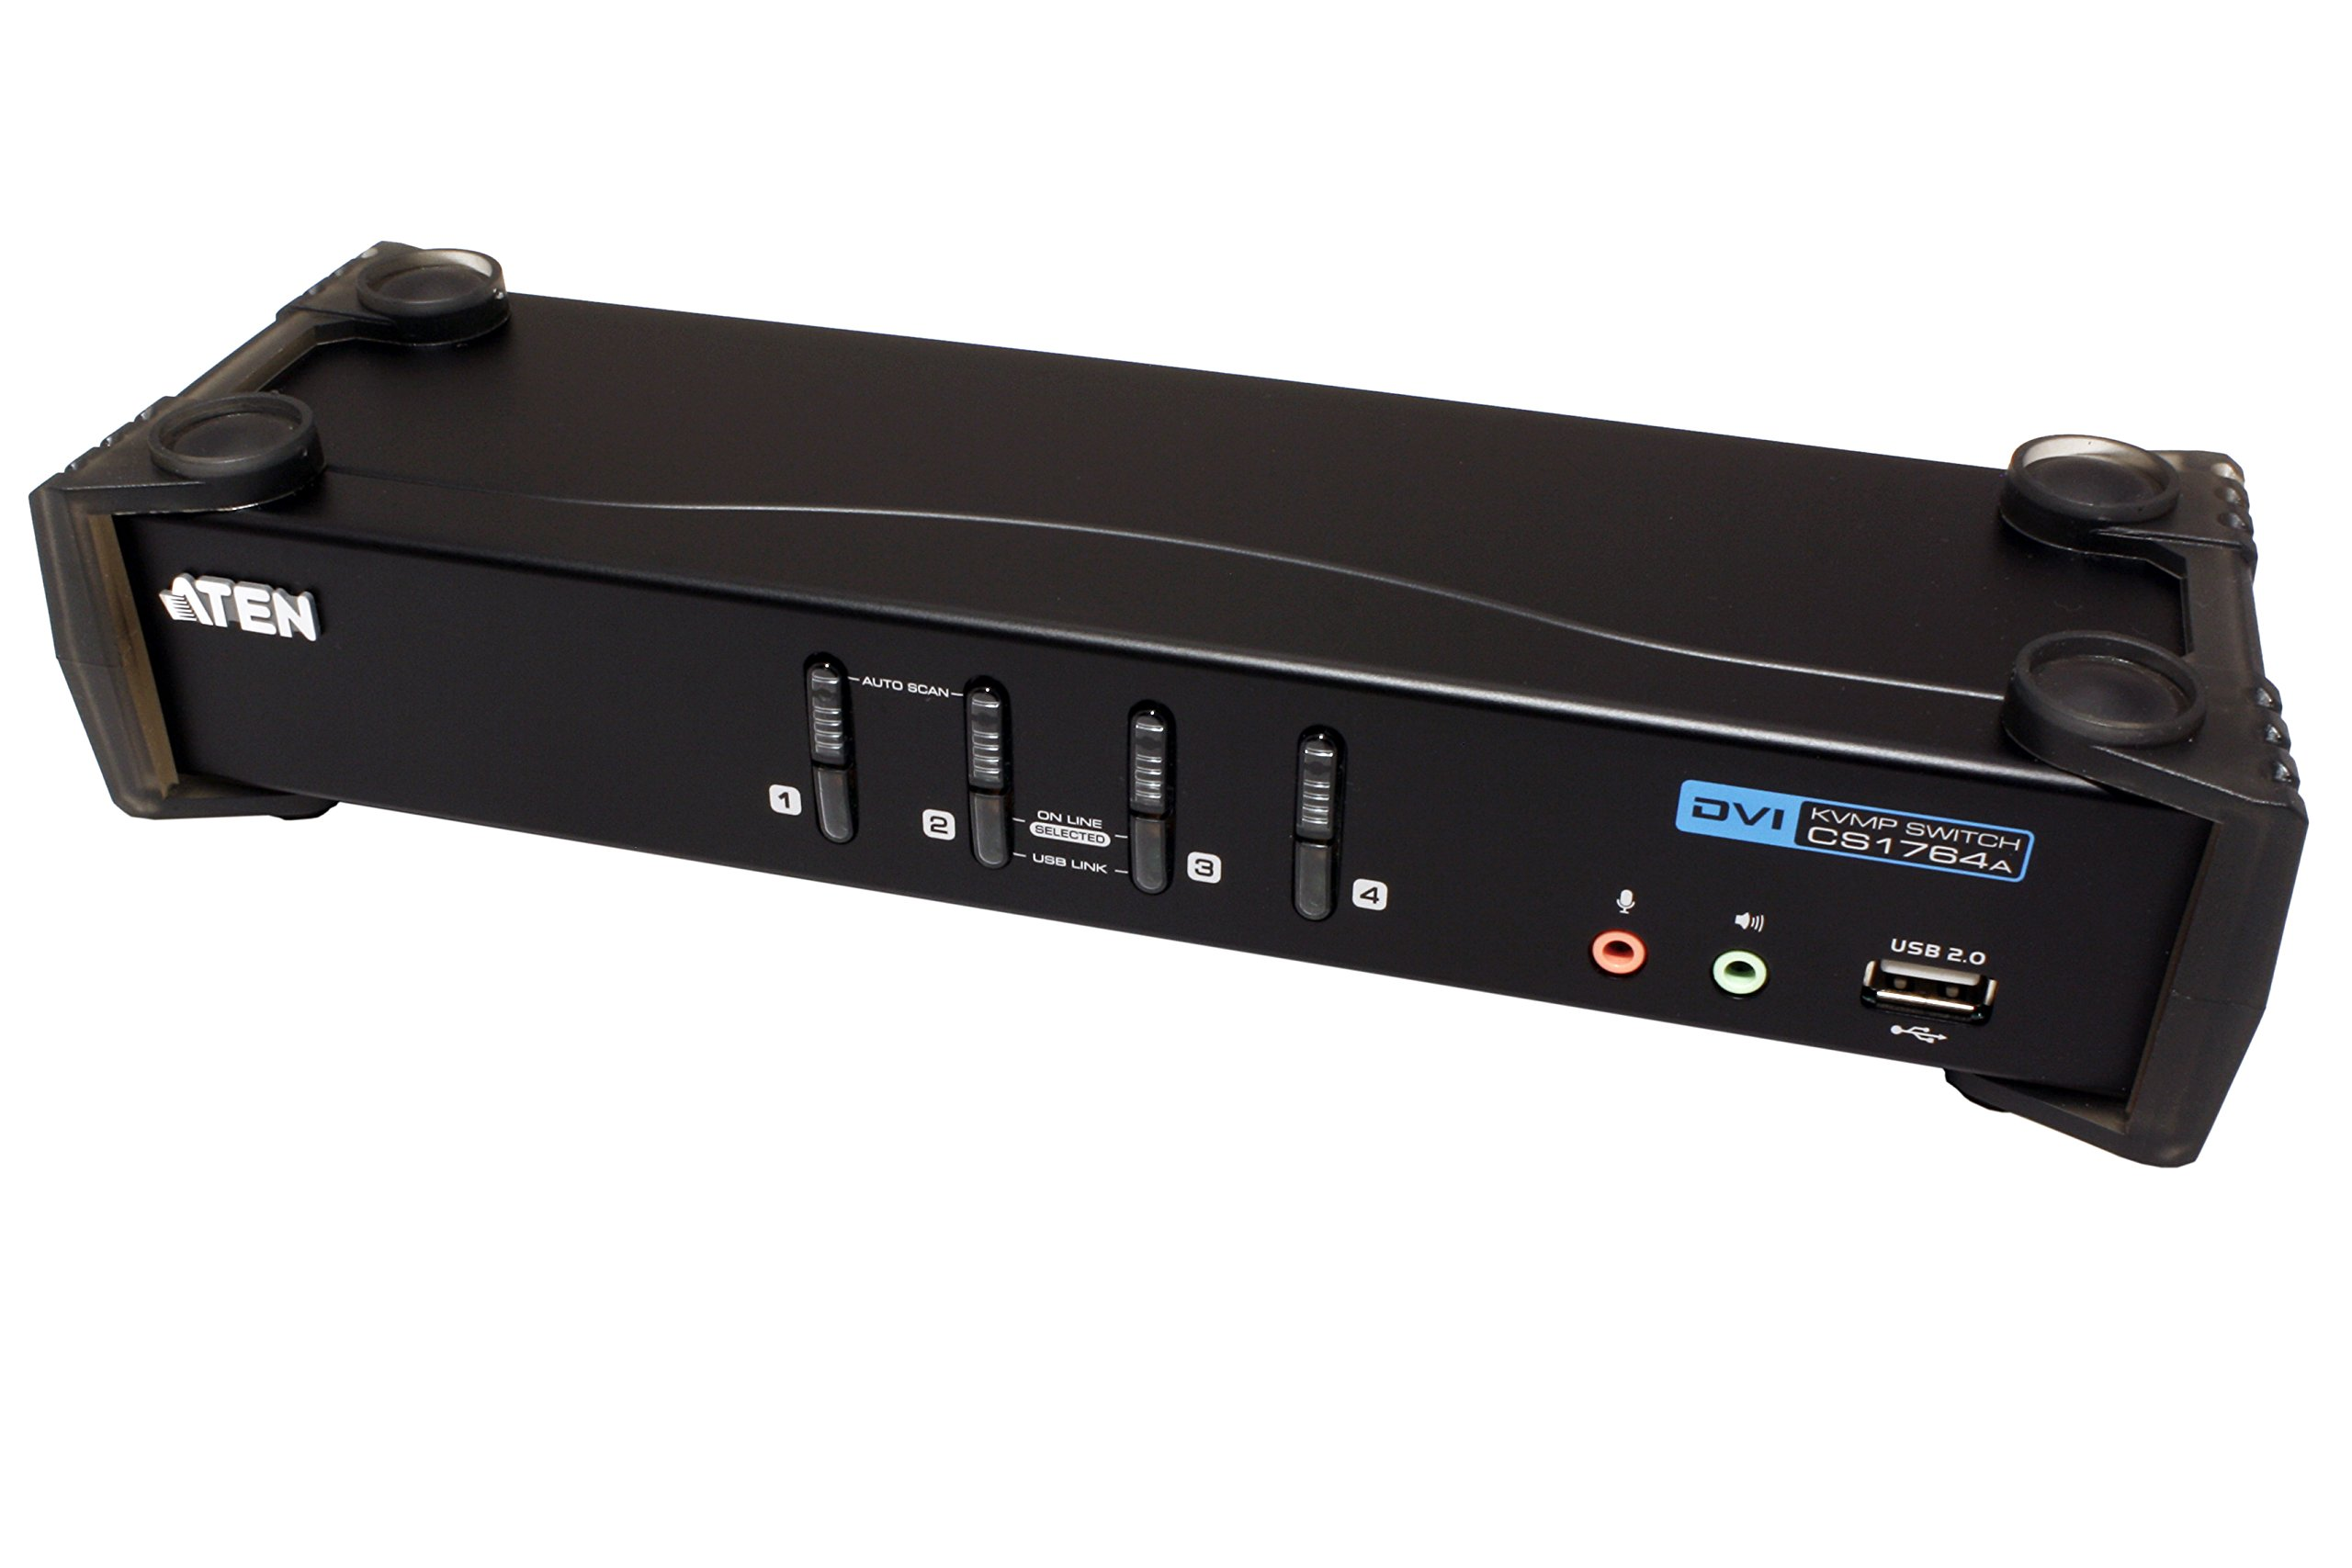 ATEN 4-Port USB 2.0 DVI KVMP Switch (CS1764A) by ATEN (Image #3)